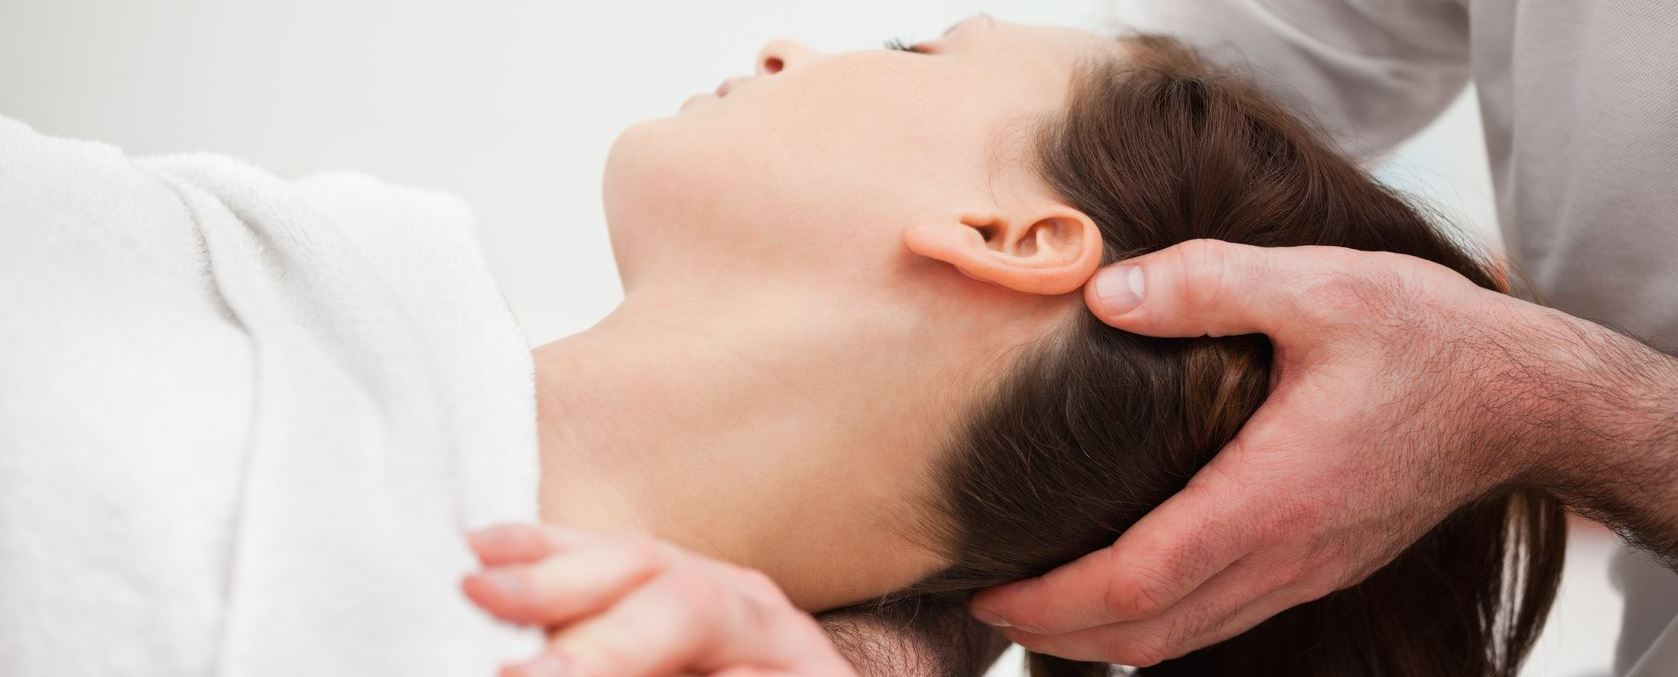 Osteopath neck massage